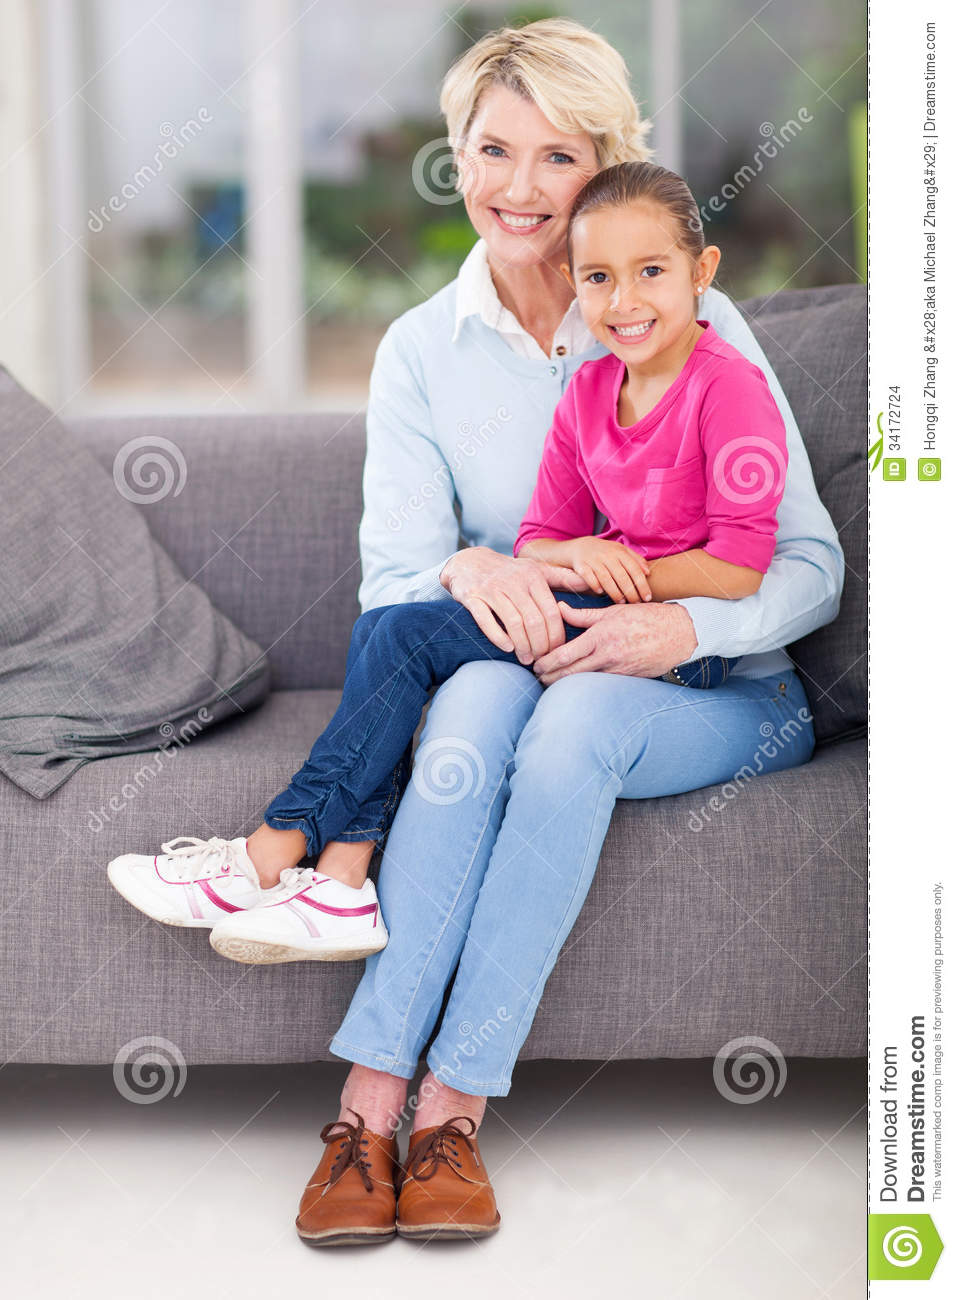 Granddaughter Grandma Lap Stock Images - Image: 34172724